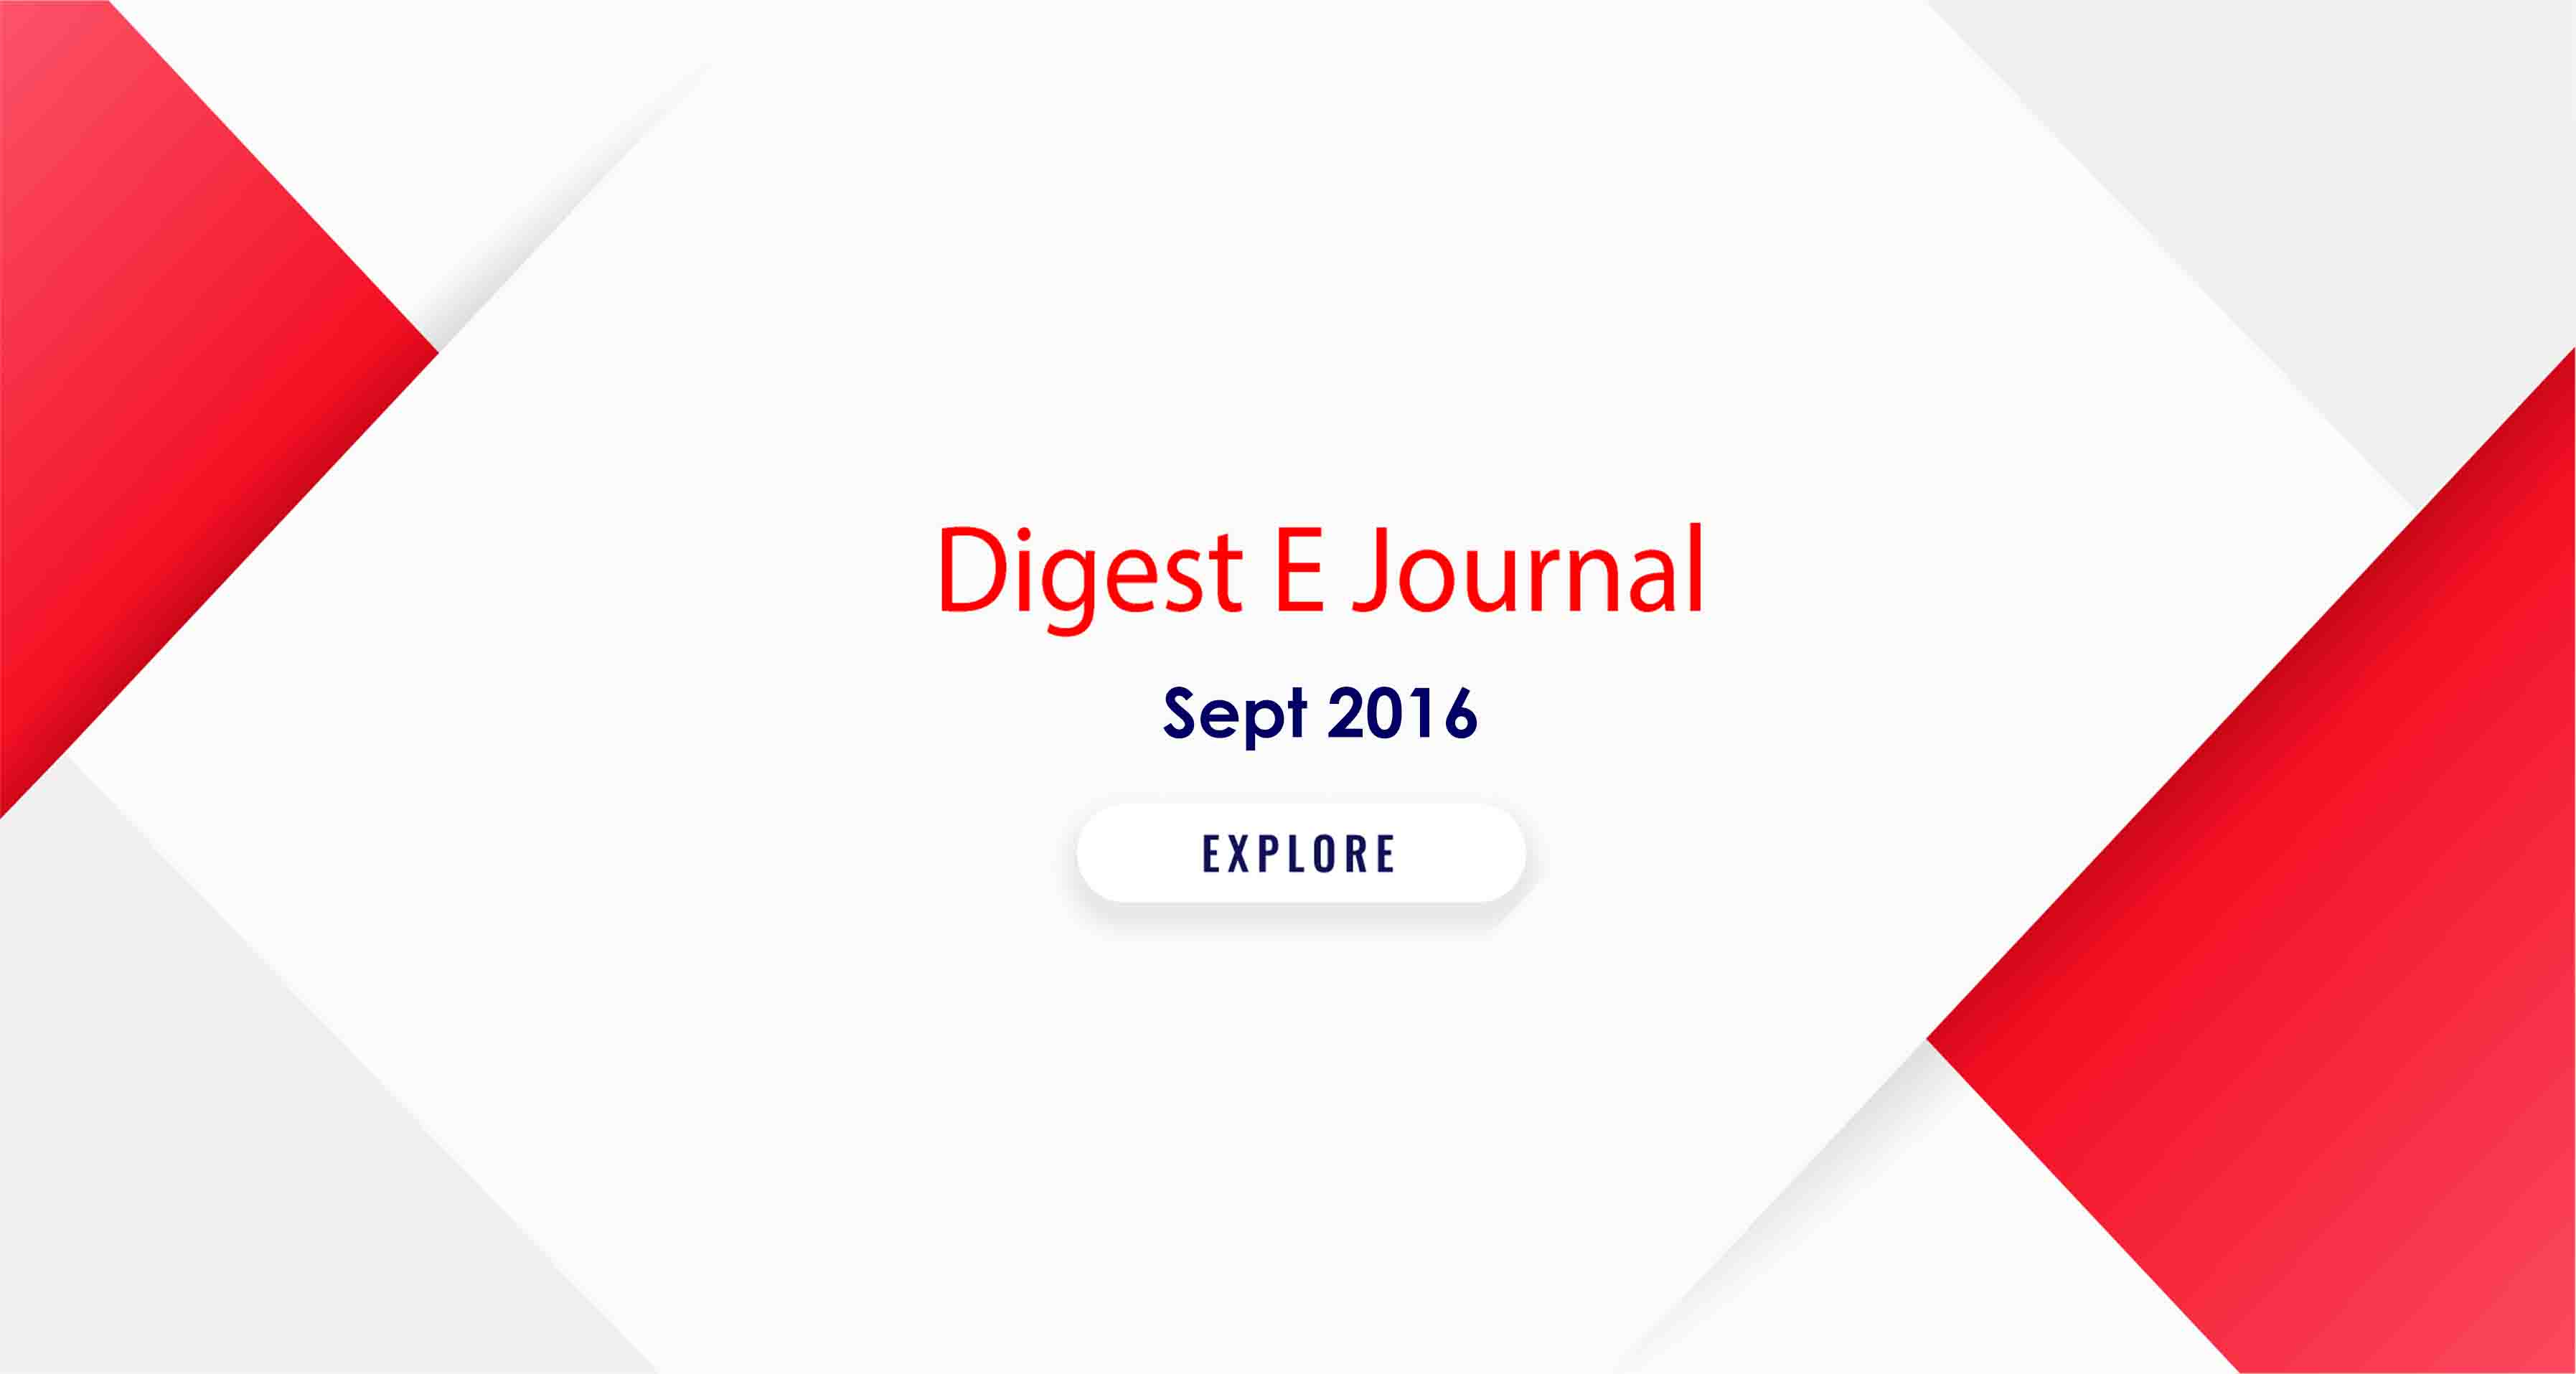 Sept 2016 Interns Digest